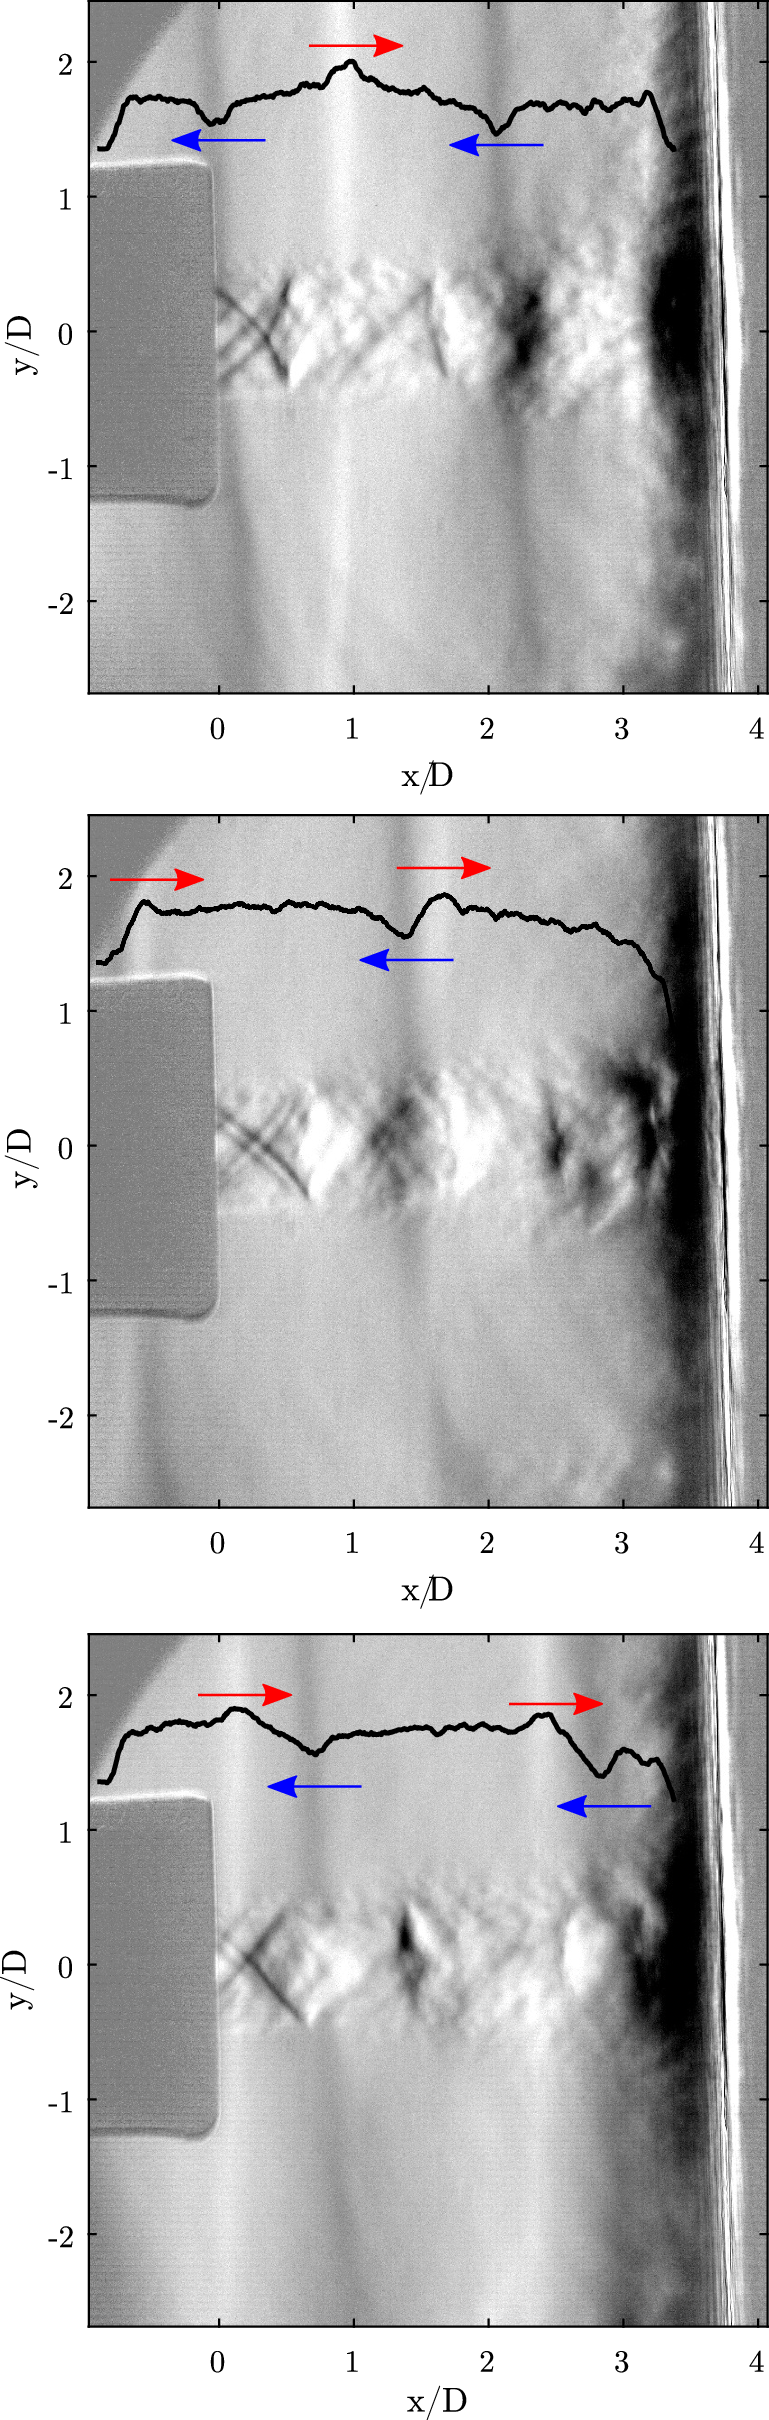 Instability modes of millimeter-scale supersonic jets | SpringerLink